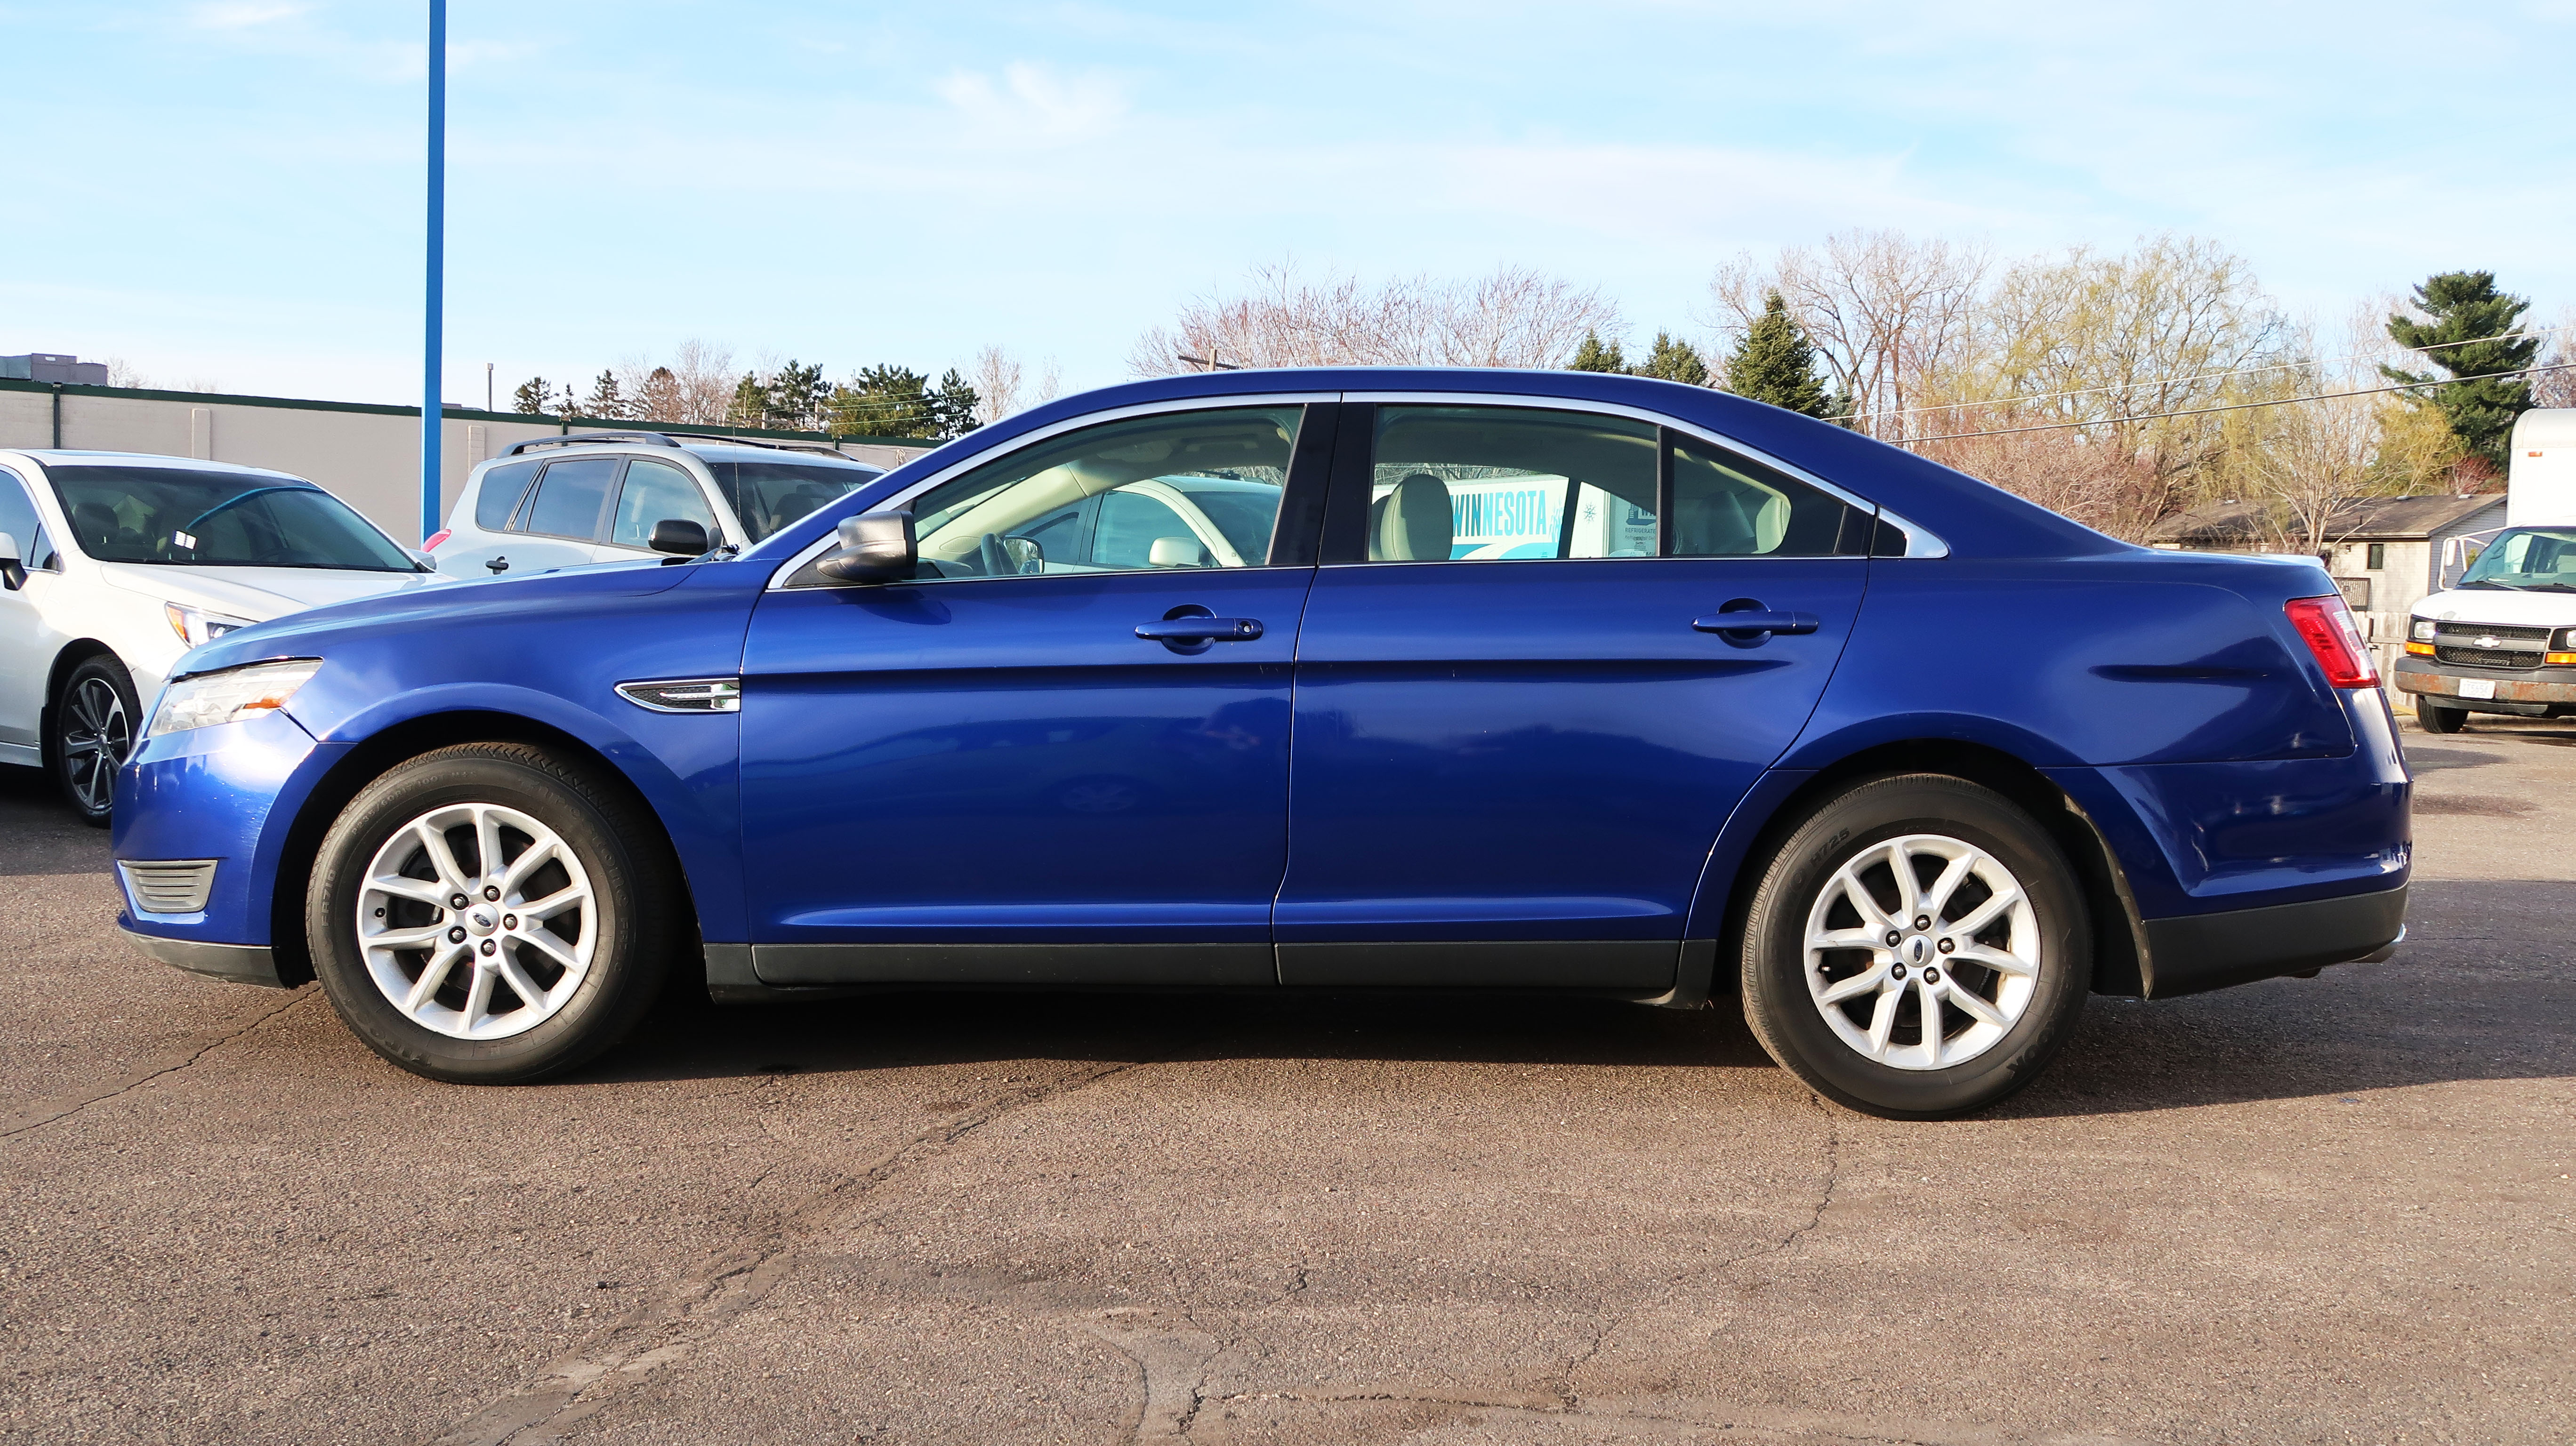 2013 Ford Taurus Sedan - PROAUTO DEALERSHIP